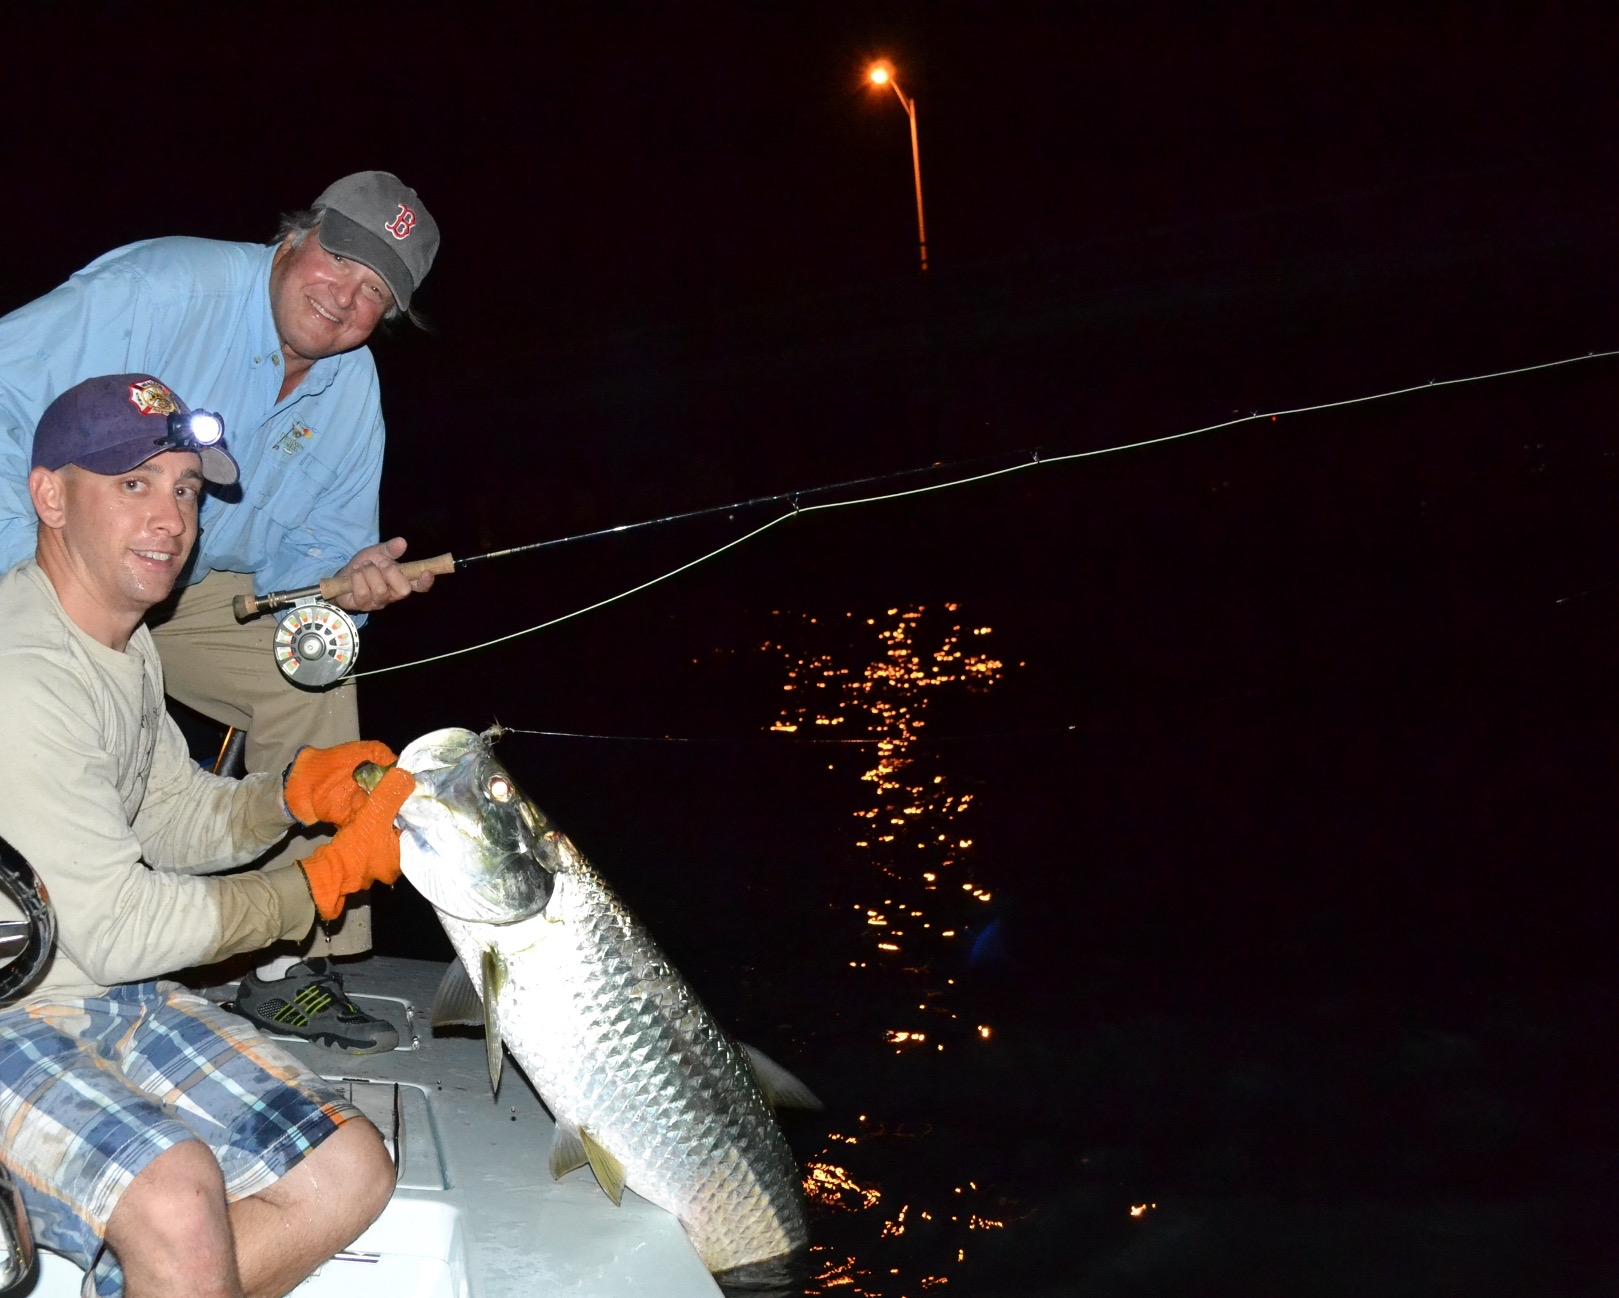 Night time tarpon fishing in islamorada firefly charters for Islamorada tarpon fishing